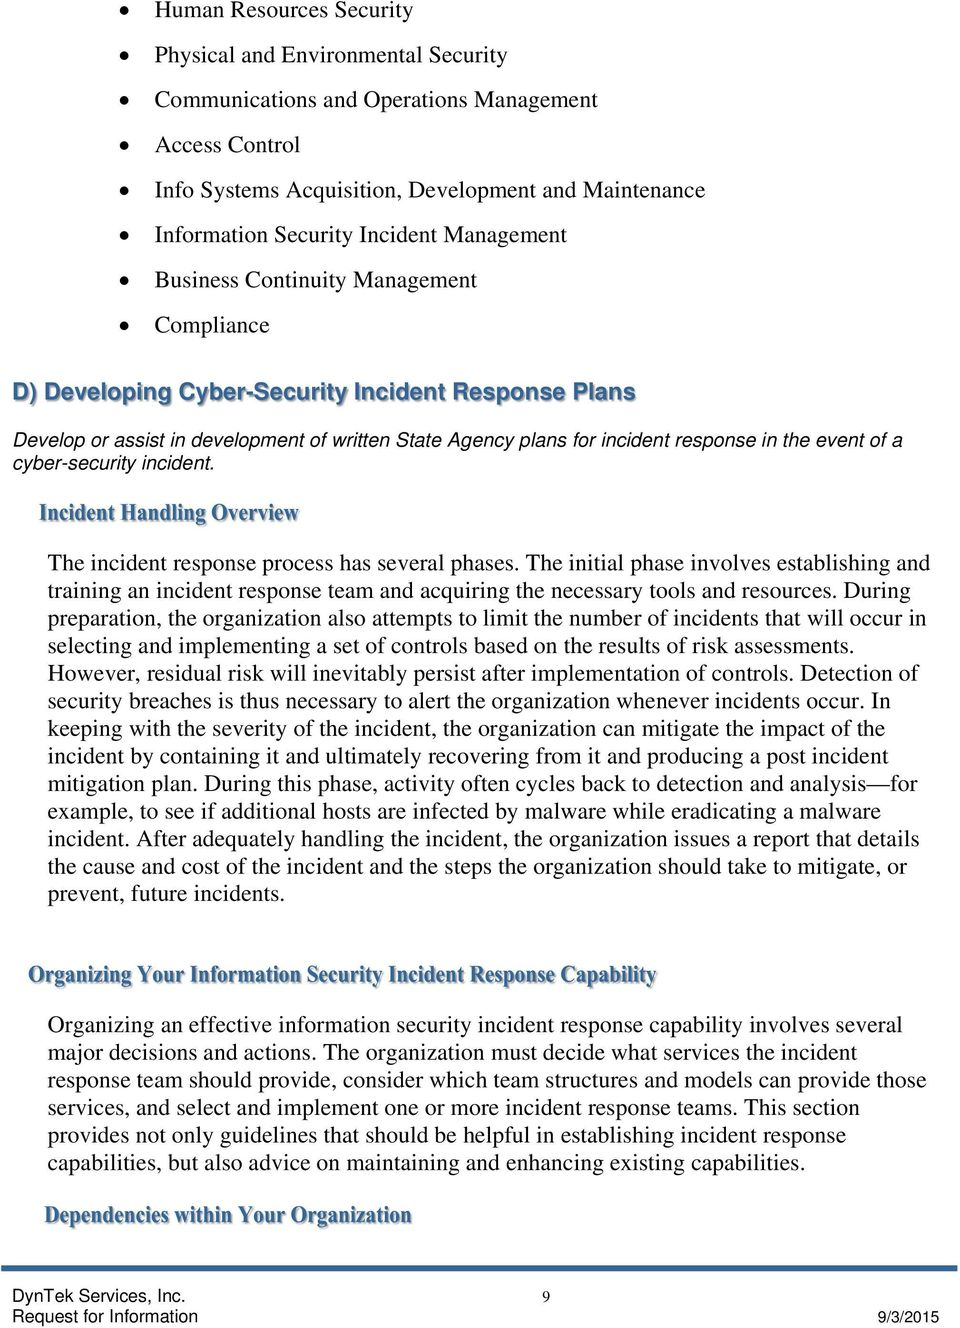 in the event of a cyber-security incident. The incident response process has several phases.